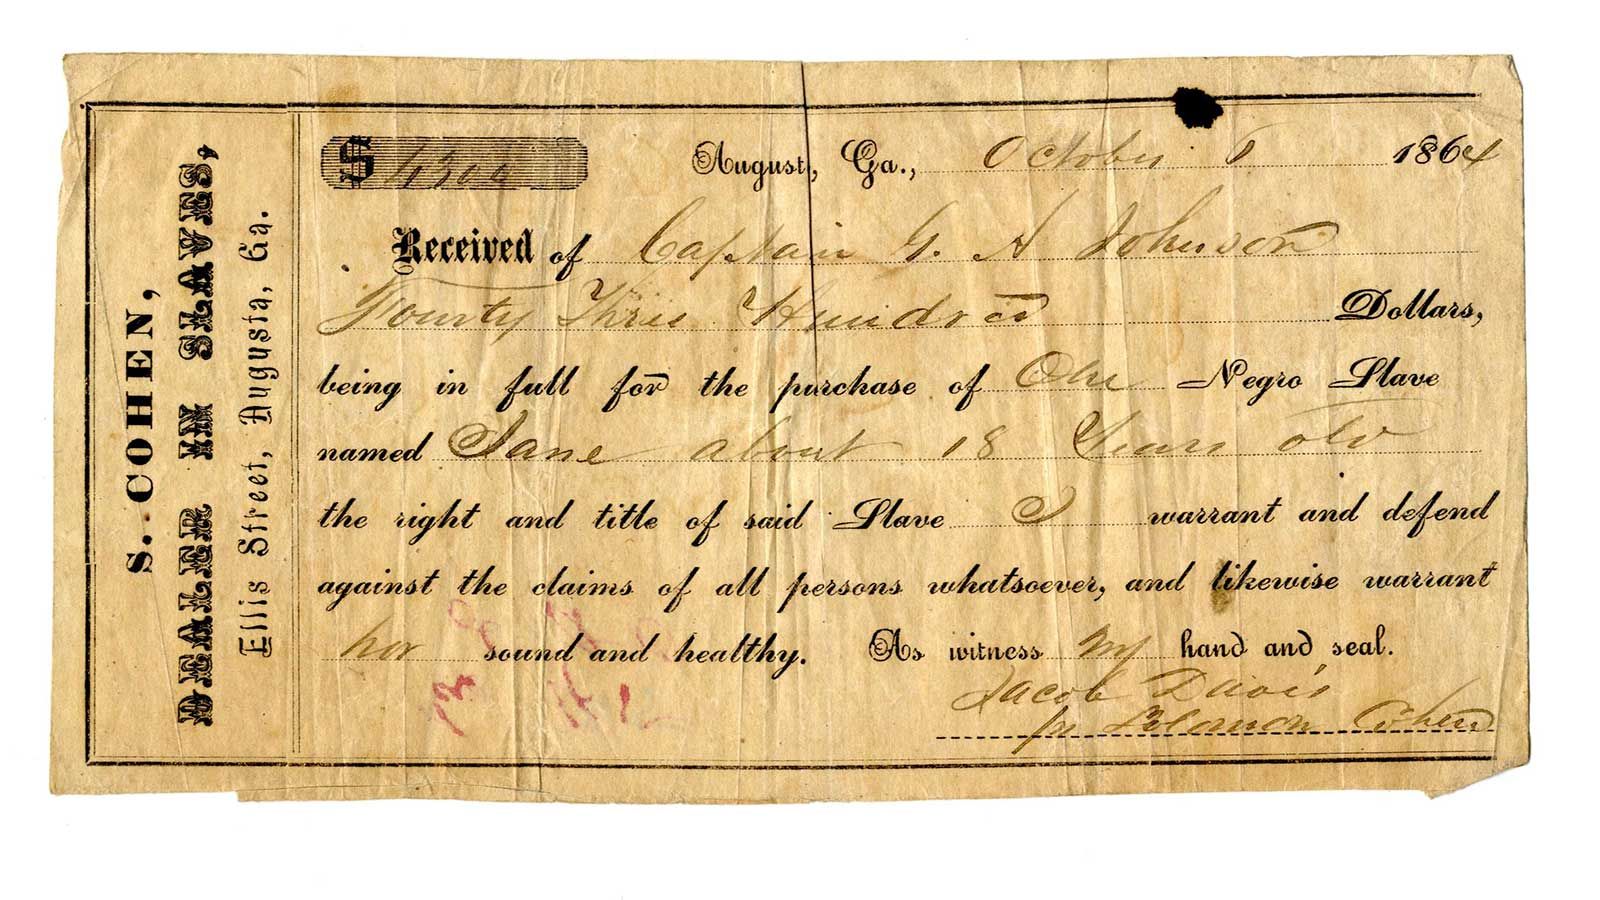 A receipt for the purchase of an 18-year-old enslaved woman named Jane for $4,300. The document was captured from a Confederate ship during the Civil War.